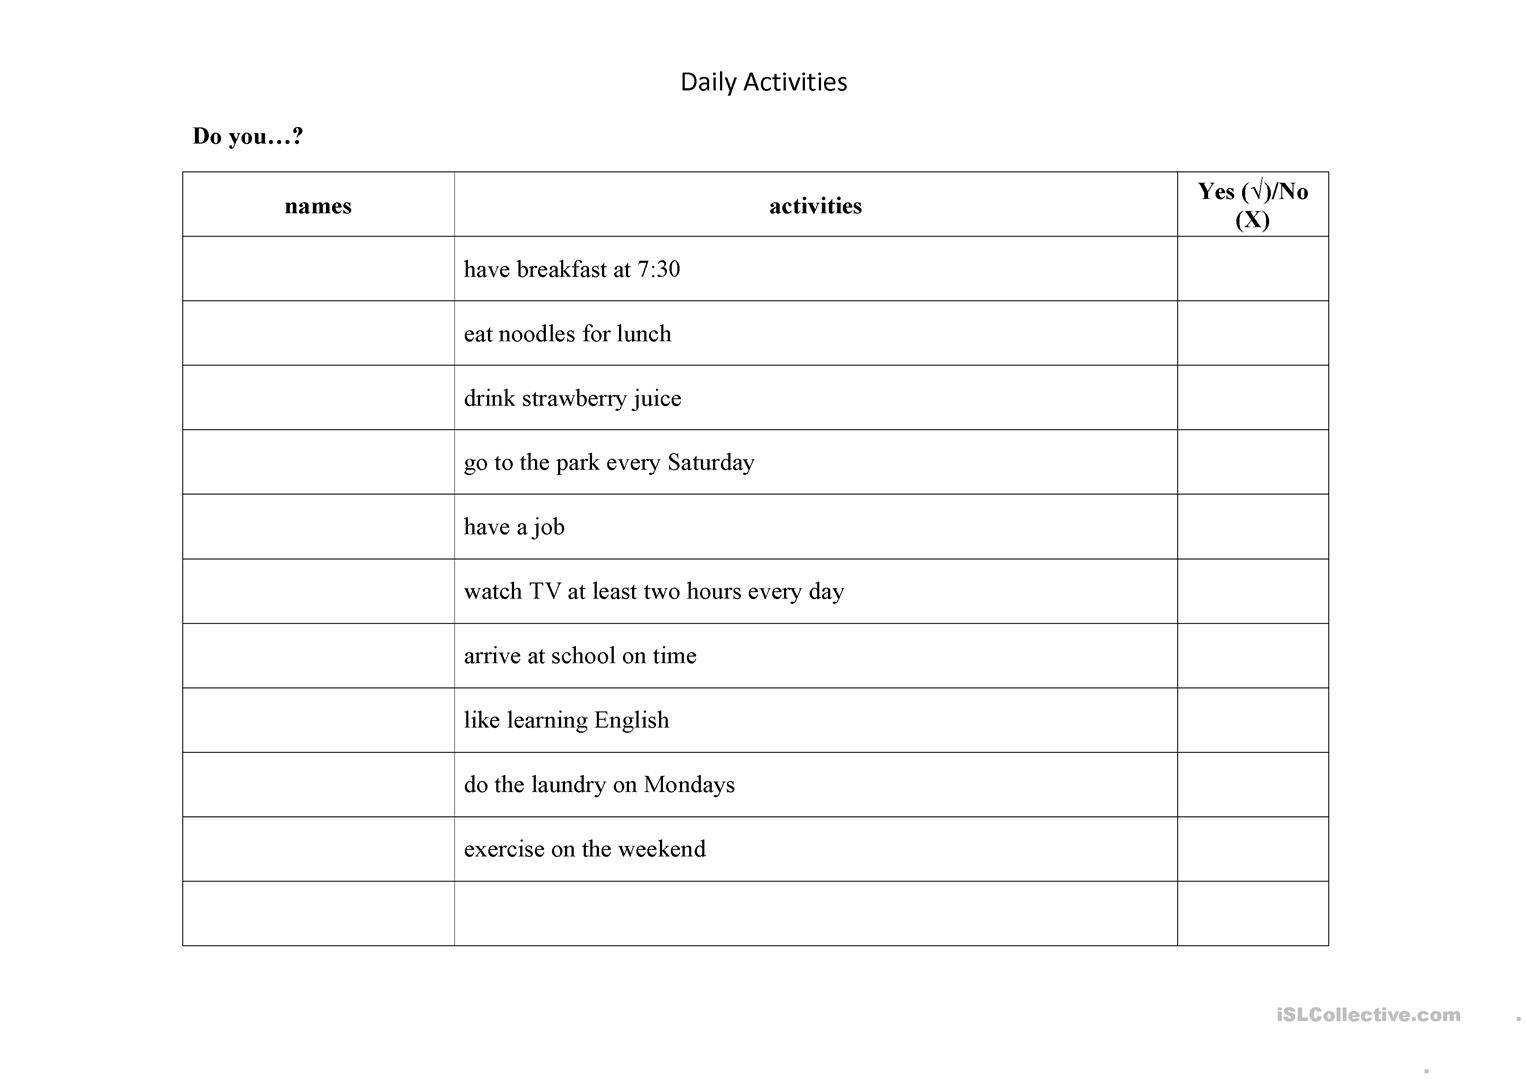 Daily Activities Quesionnaire